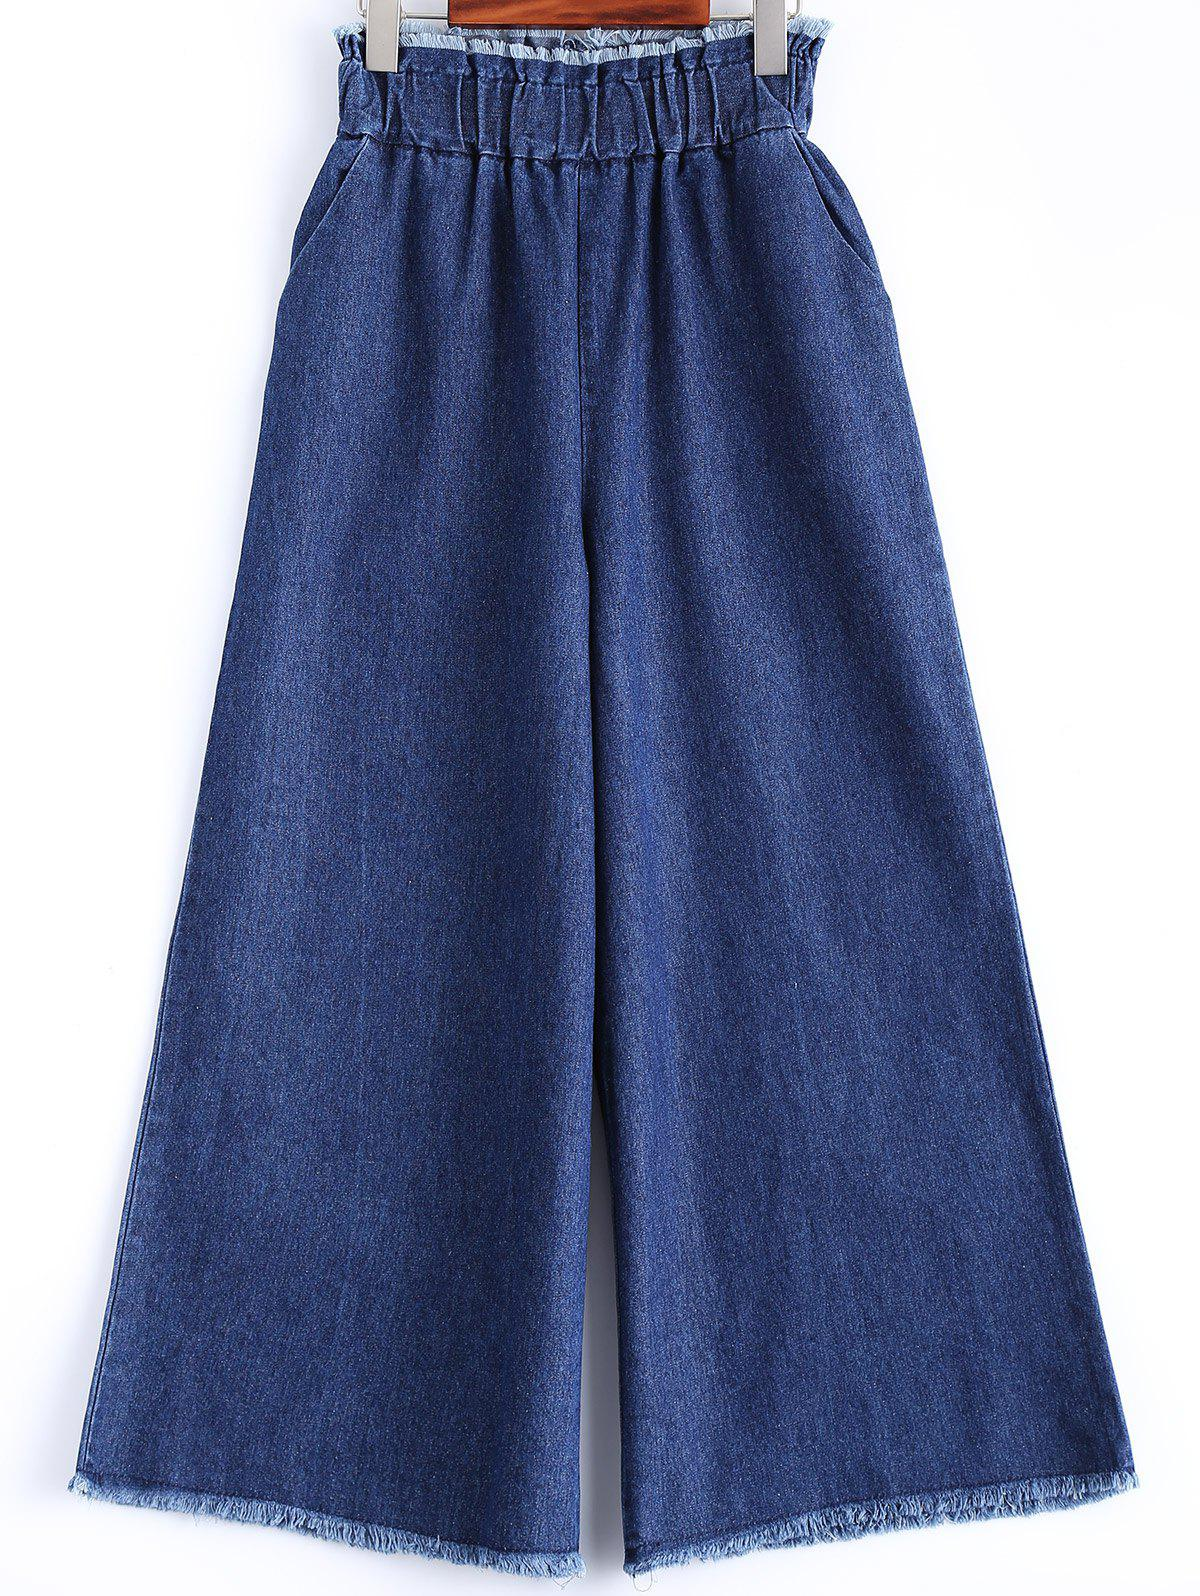 Effilochés Wide Leg Jeans - Denim Bleu 2XL